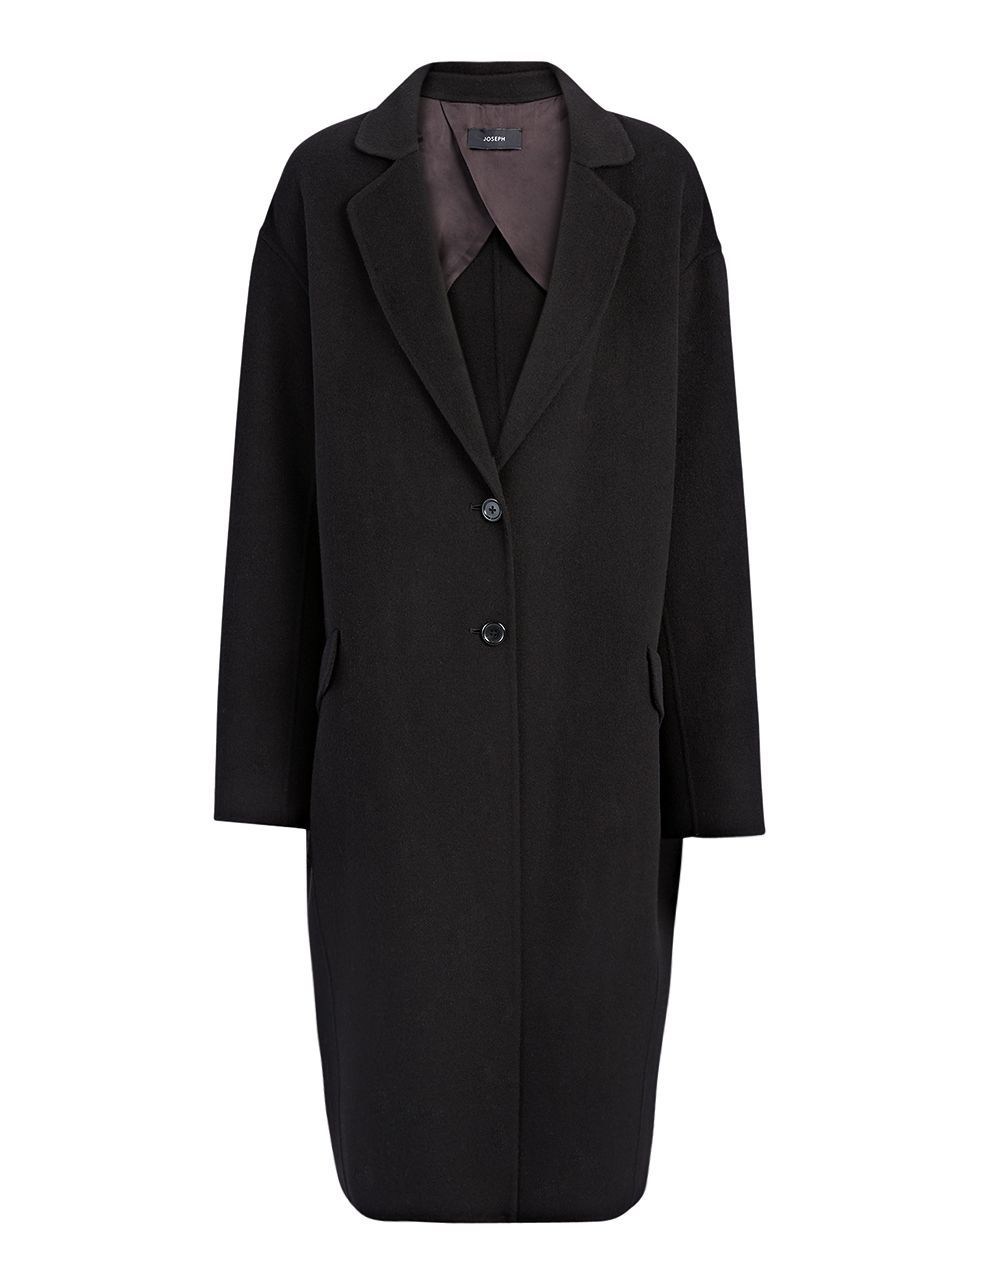 Light Double Cashmere Sido Coat In Black - pattern: plain; style: single breasted; length: on the knee; collar: standard lapel/rever collar; predominant colour: black; occasions: casual, work, creative work; fit: straight cut (boxy); fibres: wool - mix; sleeve length: long sleeve; sleeve style: standard; collar break: medium; pattern type: fabric; texture group: woven light midweight; season: a/w 2015; wardrobe: basic